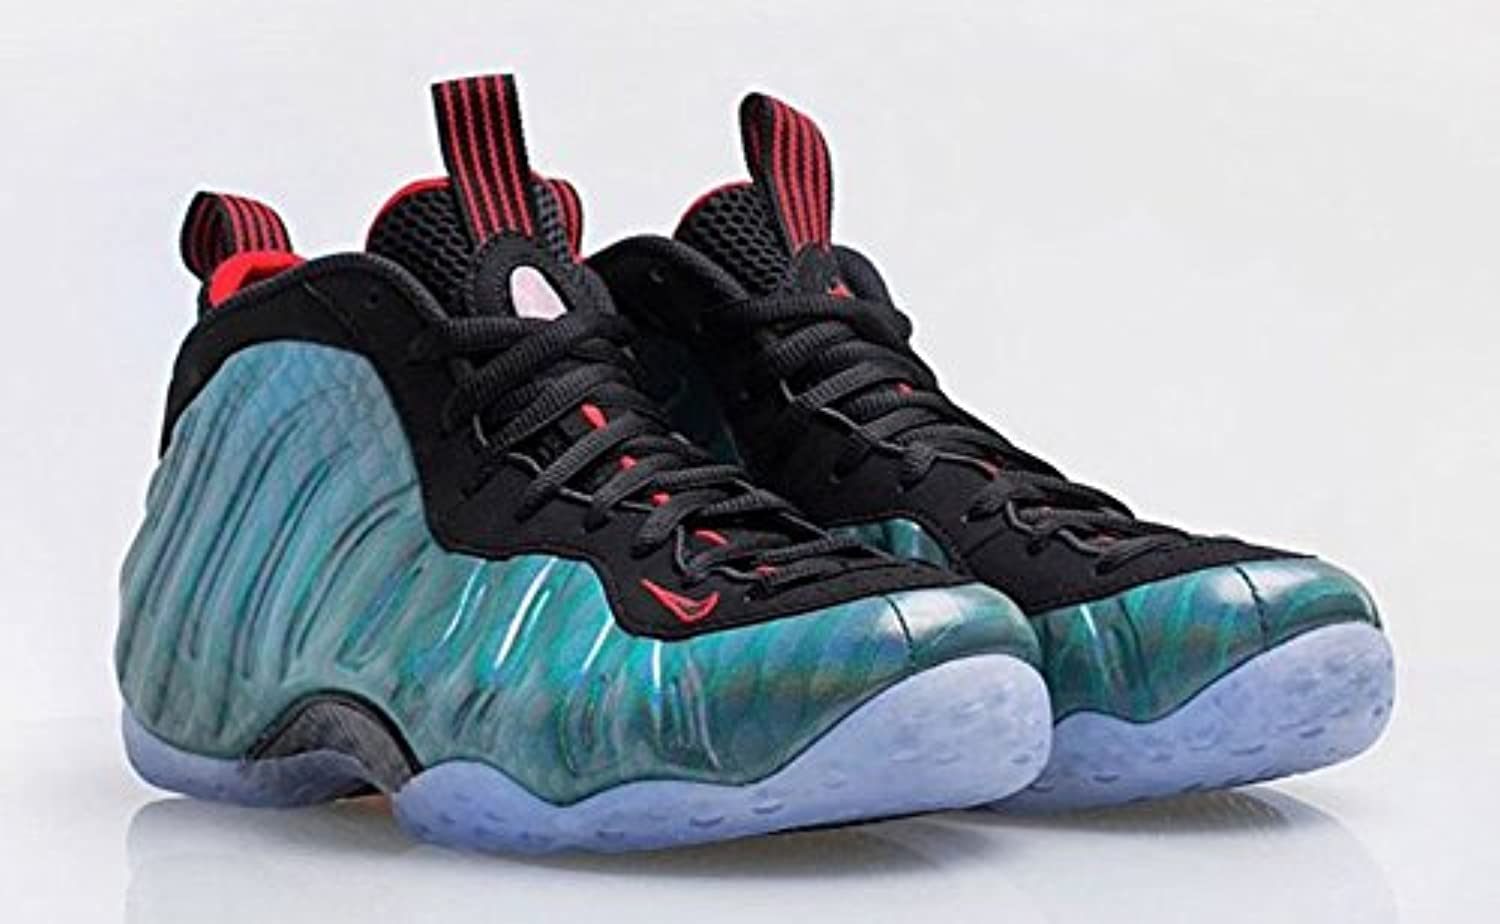 purchase cheap cafd3 95c7d Nike Foamposite Gone Fishing GS Size 7 644791-300 | $76.29 - Buy today!